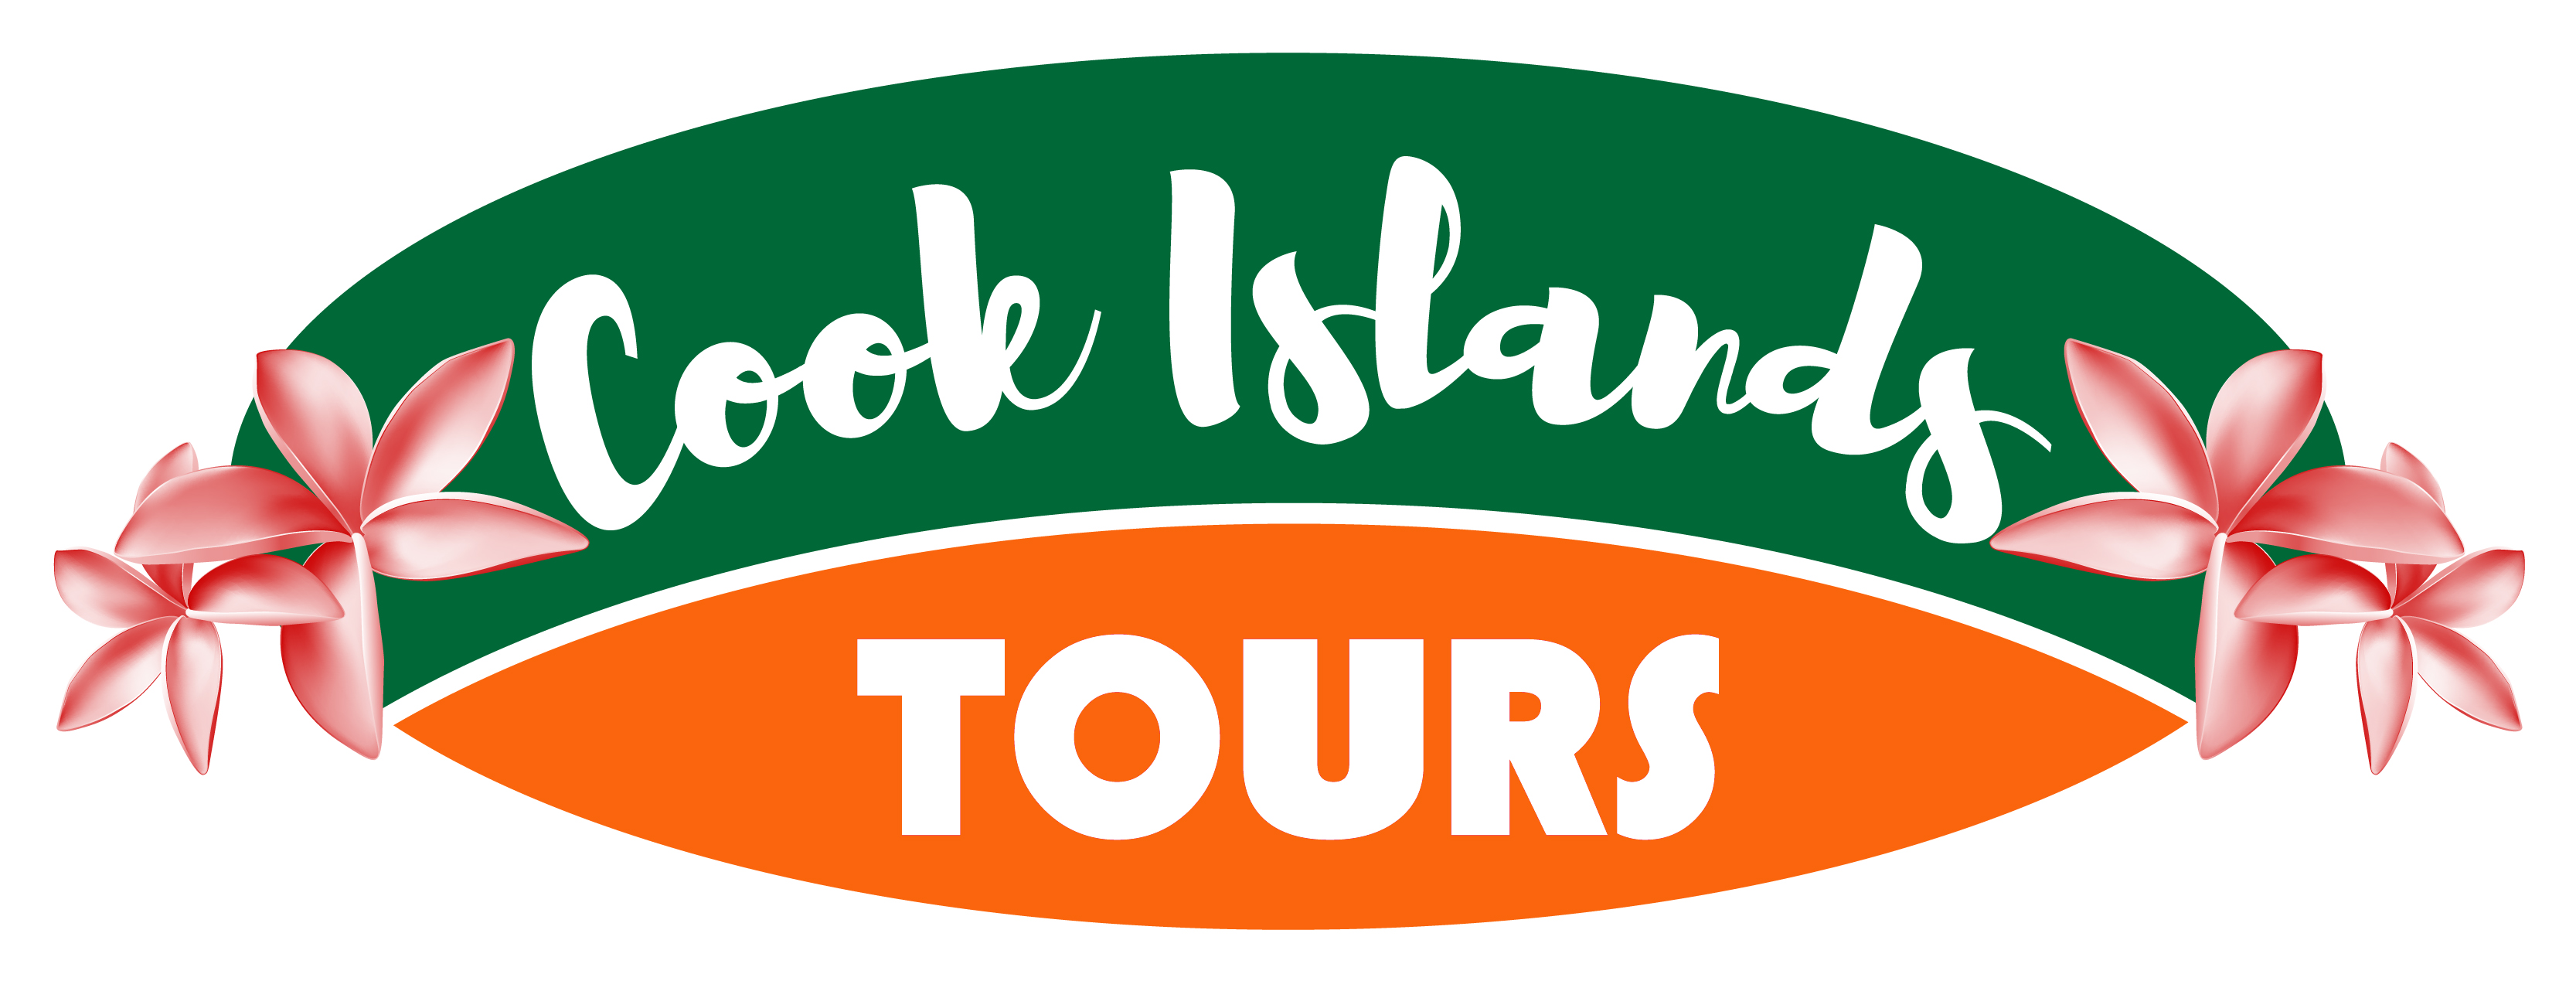 Cook Islands Tours